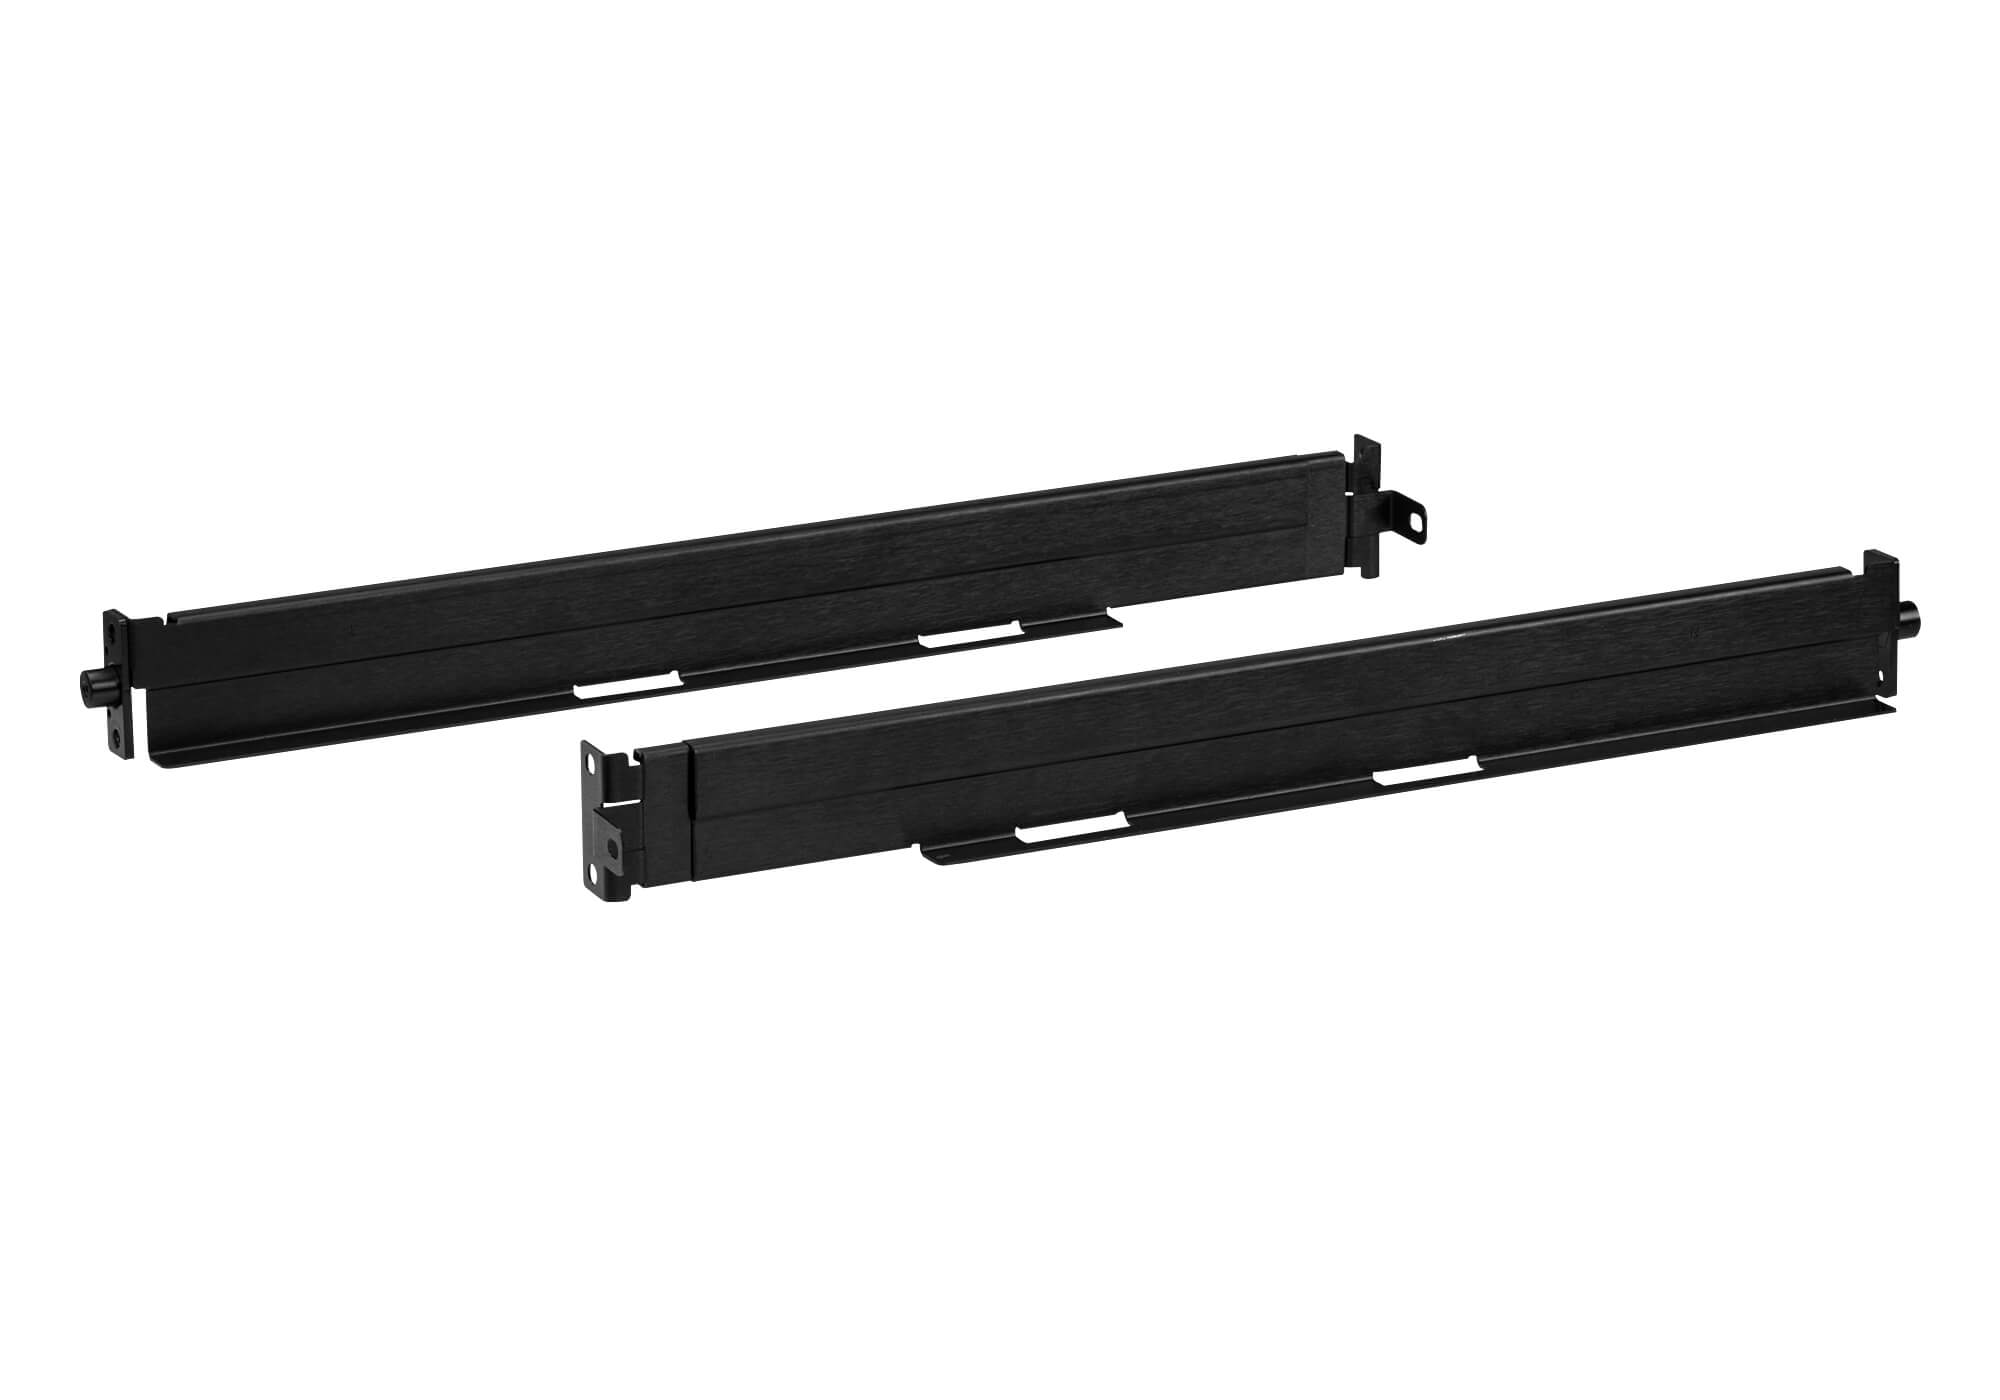 Aten Easy Installation Short Rack Mount kit for CL3800 from 45-70cm, and CL3700/CL3100 from 42 - 70cm